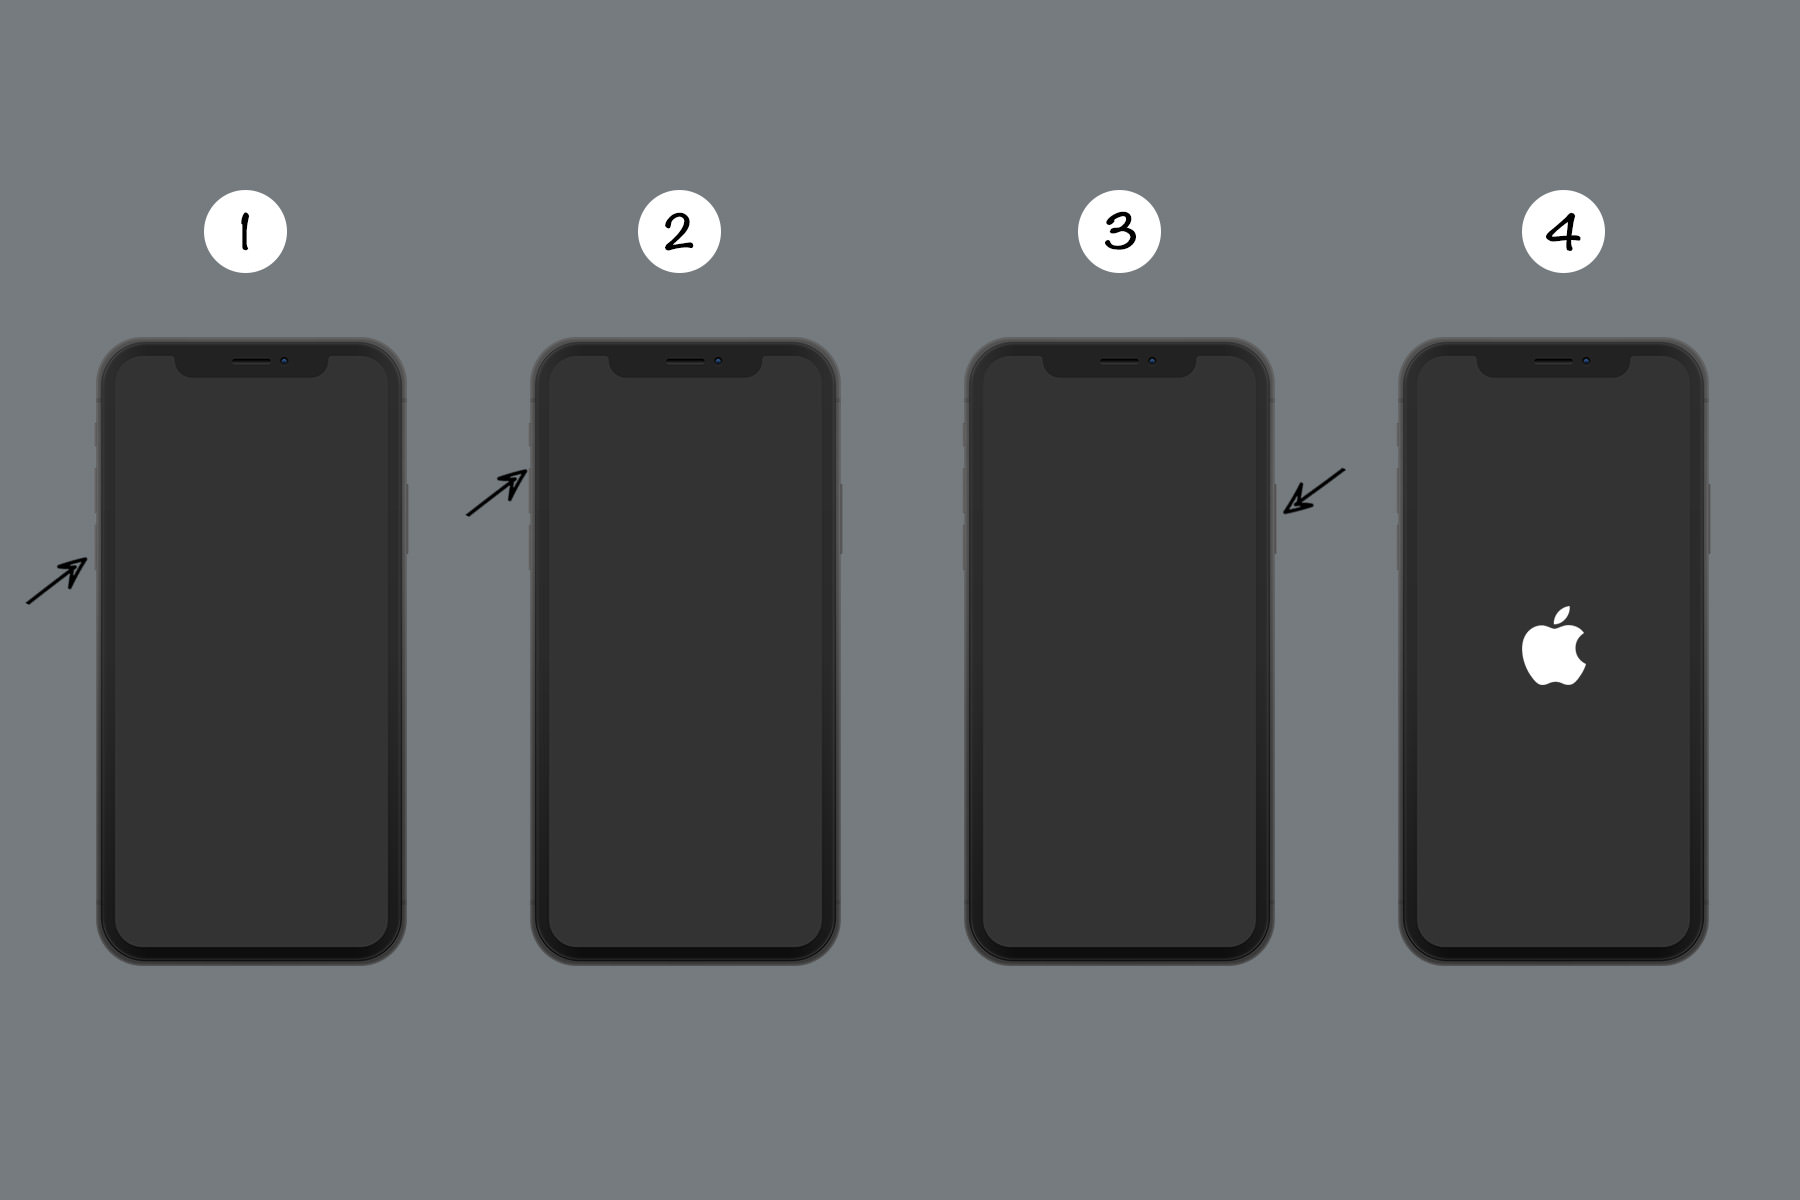 force restart iphone 8, iphone x